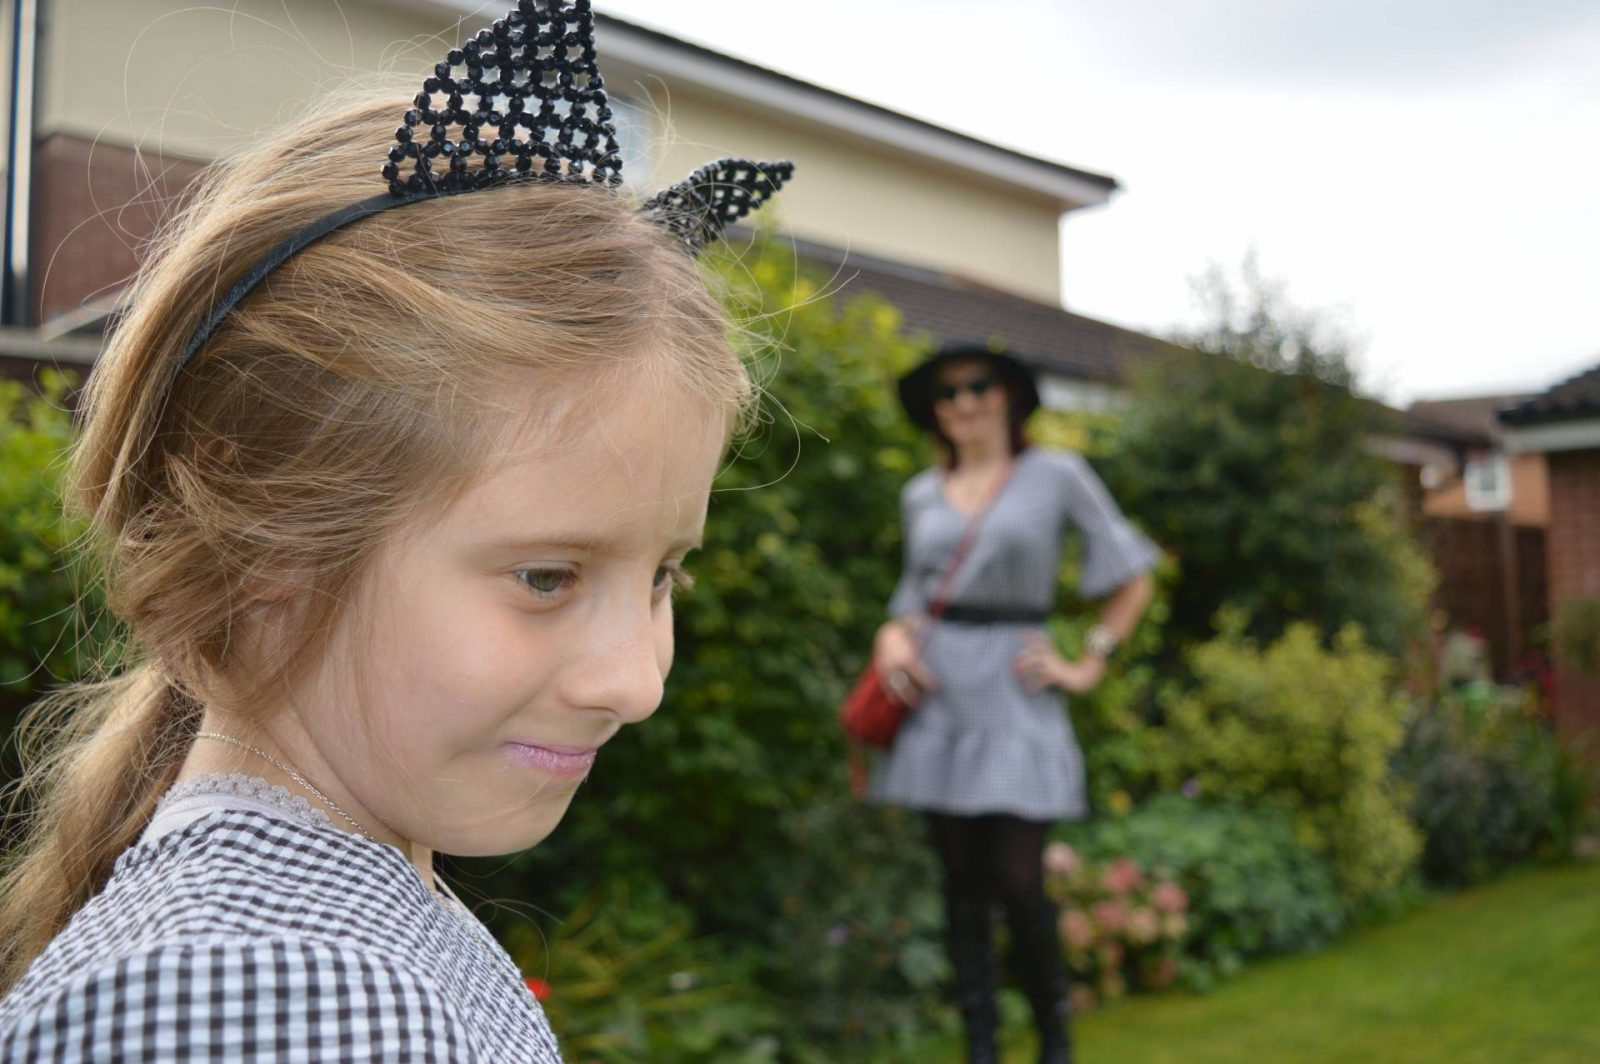 Matching Gingham Dresses and Boots cat ear beaded headband